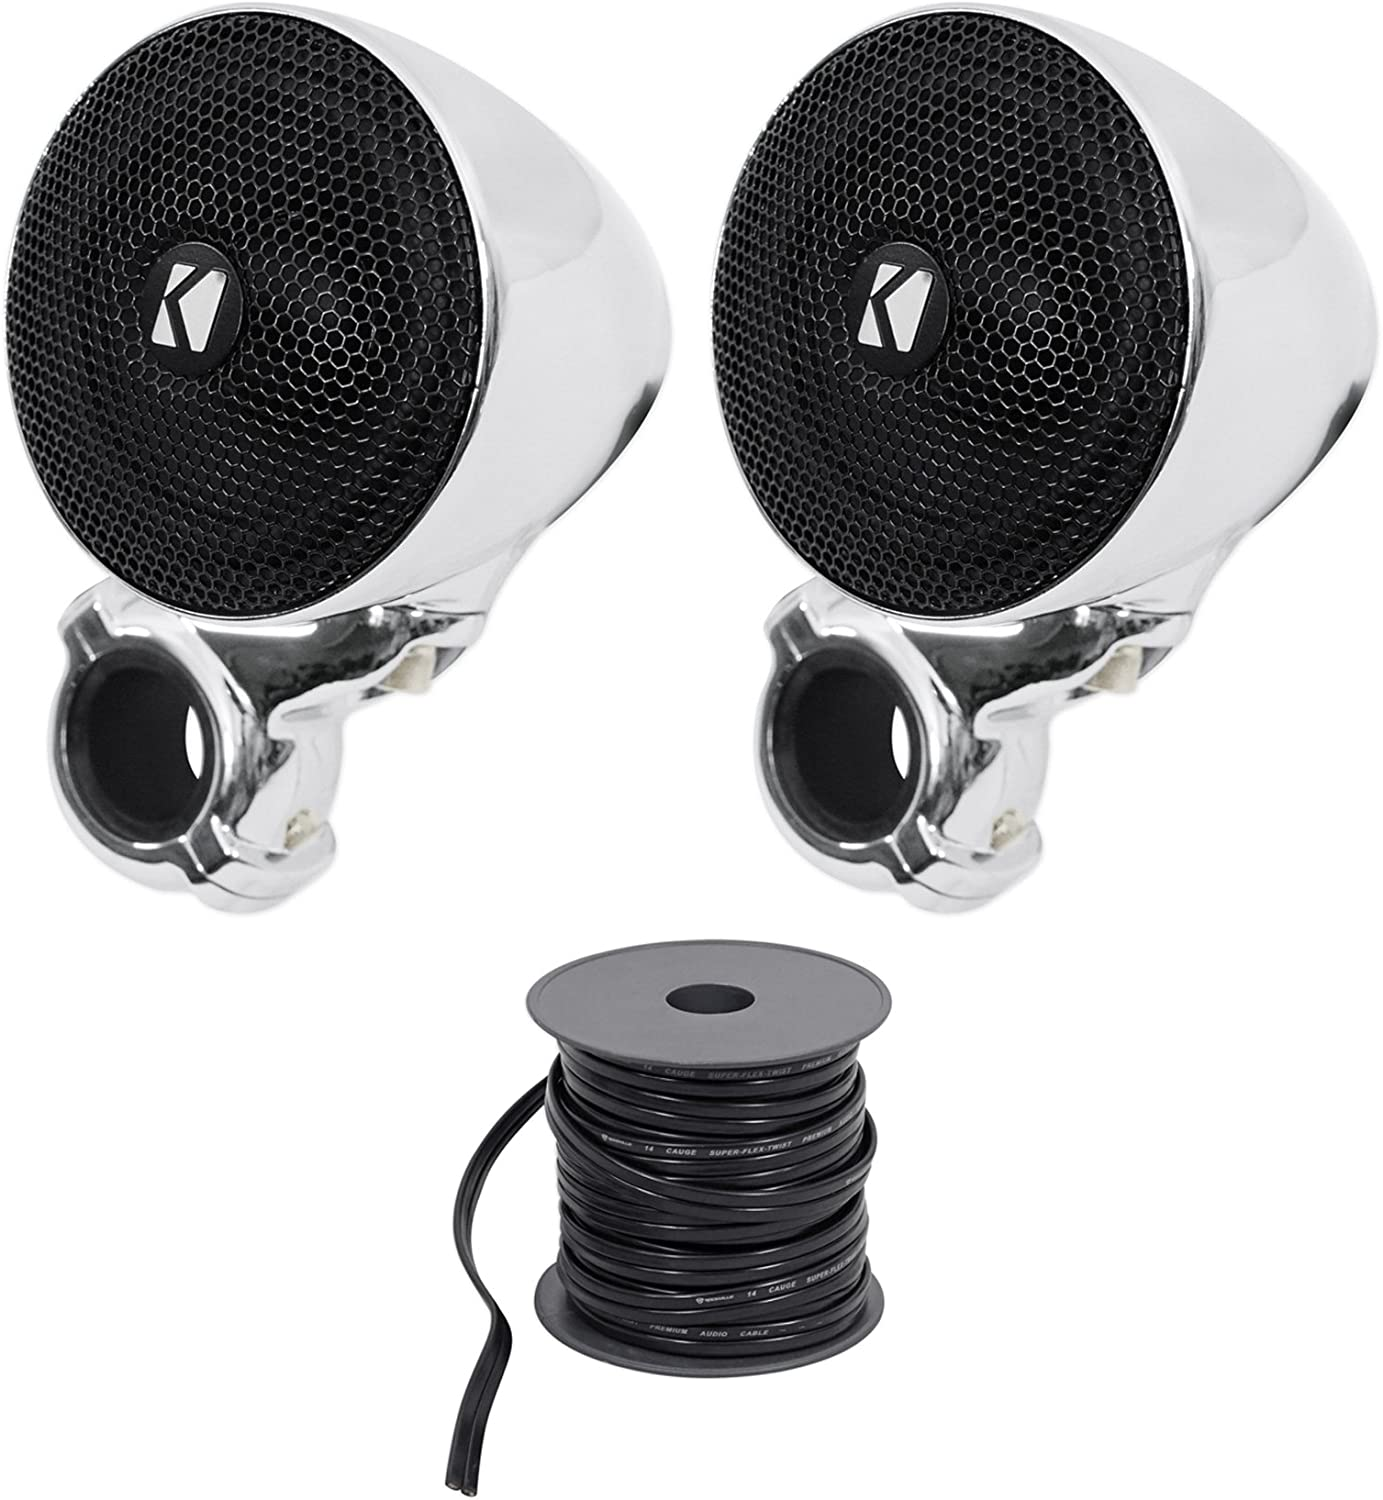 (2) Kicker 40PSM32 PSM3 Waterproof Motorcycle/ATV Handlebar Speakers+Marine Wire 81SB823KW-LSL1500_